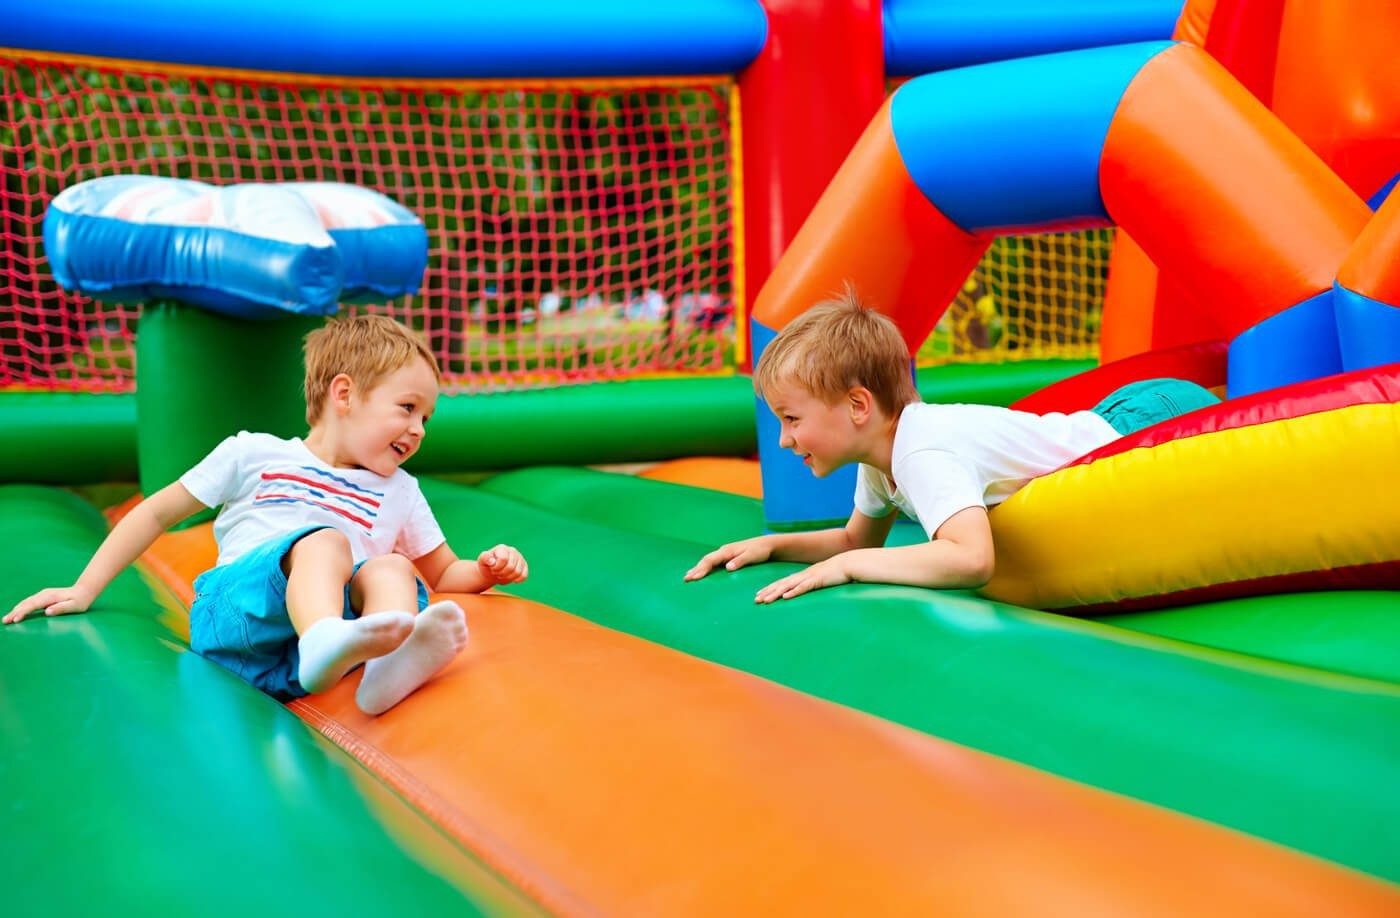 two little boys smiling in a bounce house